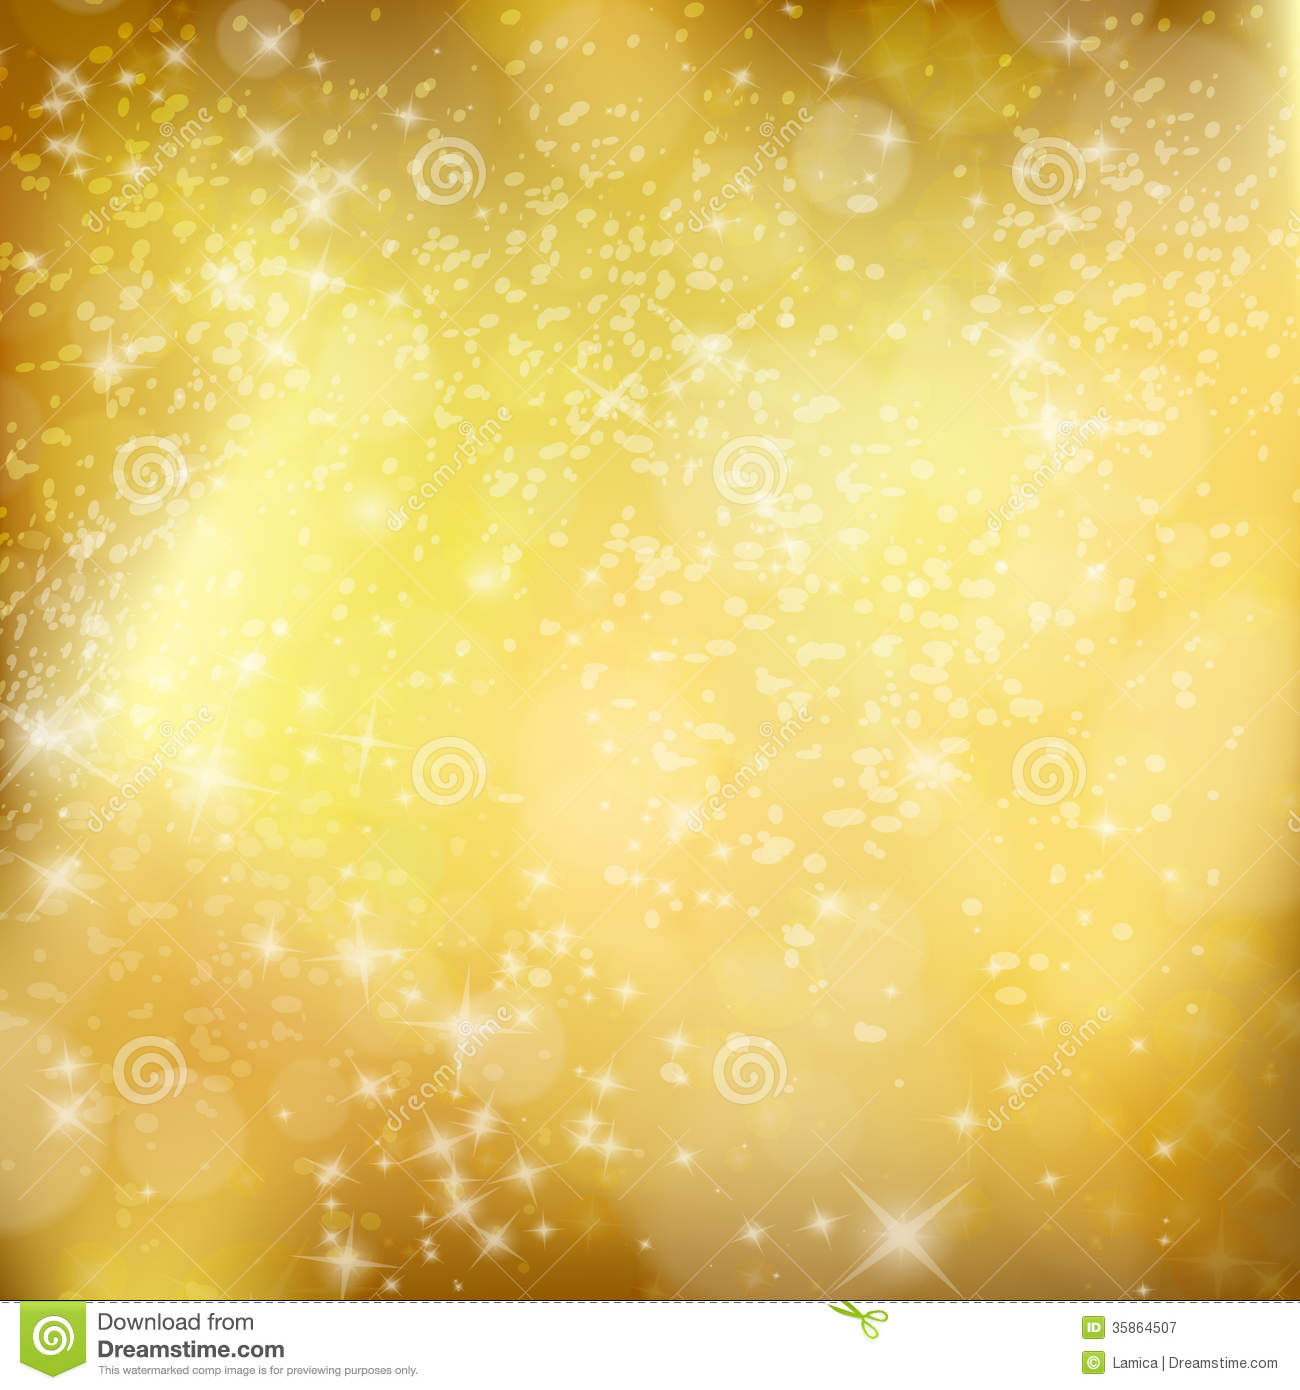 golden xmas background abstract winter design with stars and sn